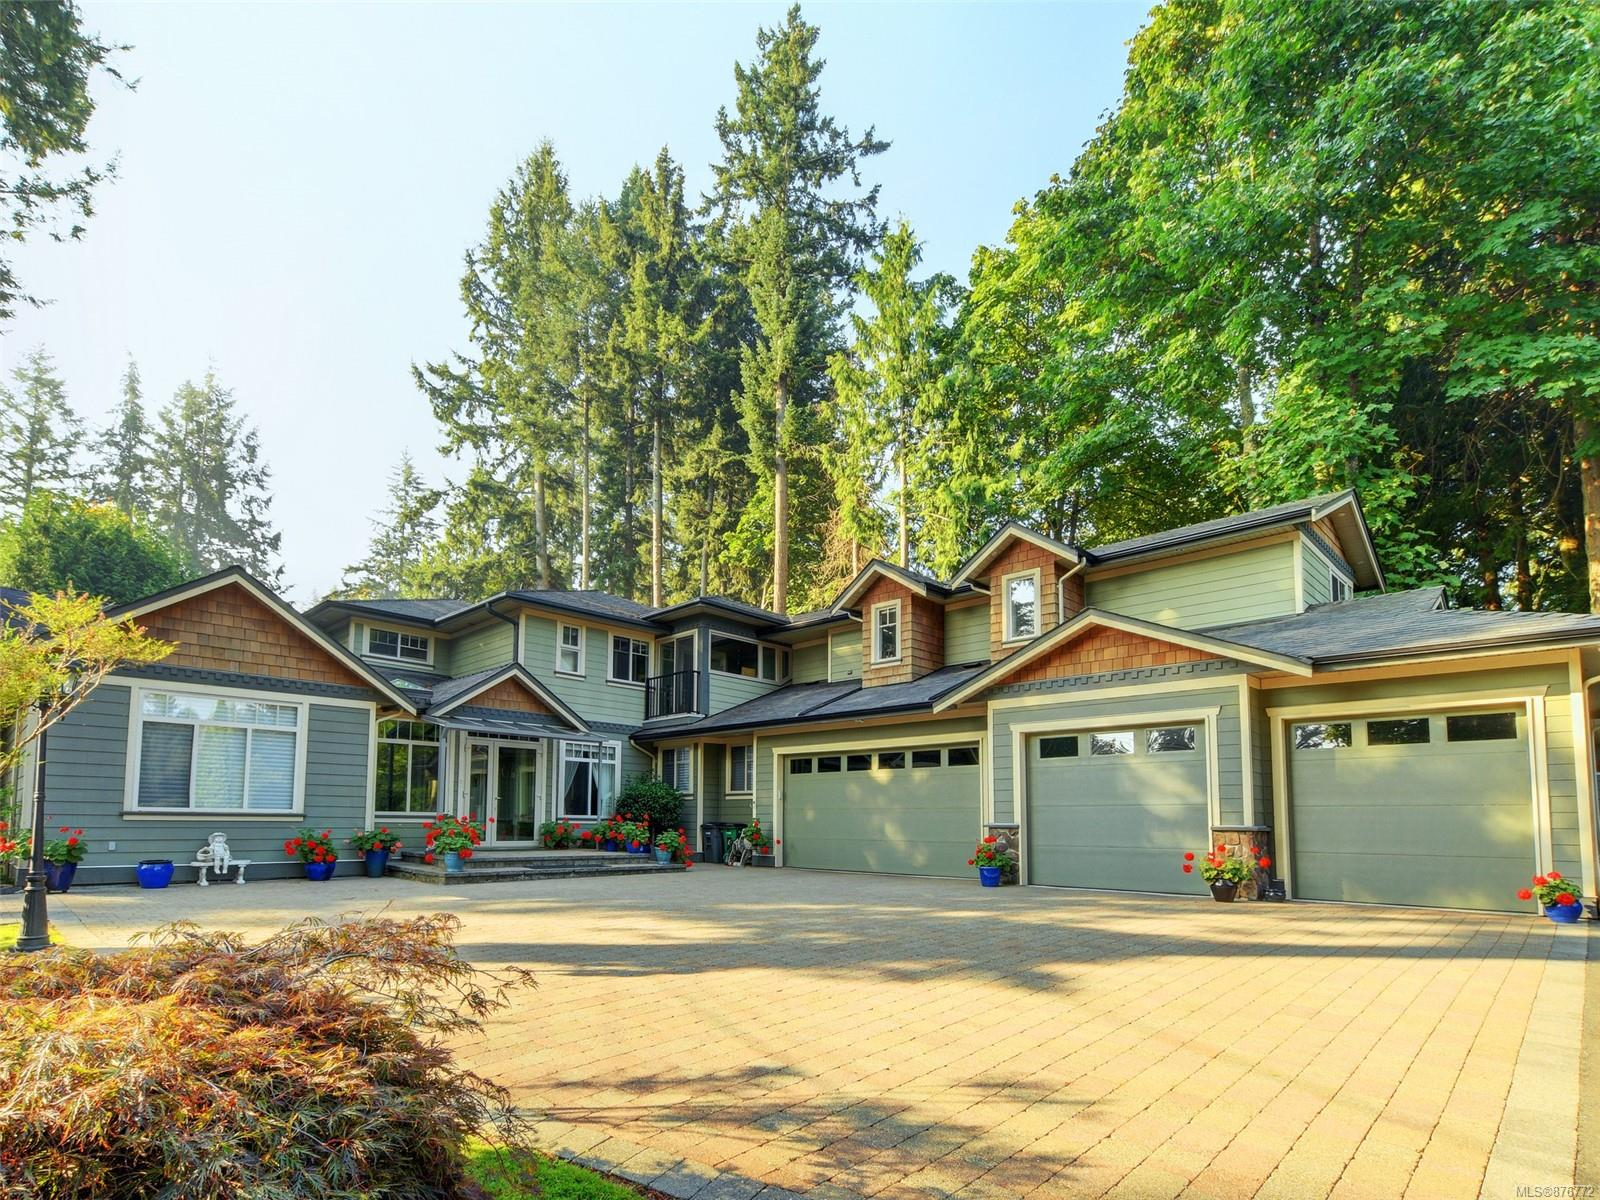 CORDOVA BAY EXECUTIVE HOME-This 5 bedroom & 6 bathroom gated home boasts over 5000 sqft of living space & is abundant w/high-end features. You will find heated maple hardwood flooring, a large gourmet kitchen w/Miele & SubZero ss appliances, granite countertops, & beautiful white cabinetry. Kitchen is connected to a stunning fountain room, providing a tranquil space for rest & relaxation. Main floor offers 2 large living/family rooms, office w/large book organizer, media room wired for a projector, & built-in surround sound system that can be enjoyed throughout the home. Upstairs has large 2 bedroom suite-w/separate entry-which can be included as an extension of the main house or kept as a detached suite. It has its own covered parking. Every bedroom has its own ensuite. Beautifully landscaped w/large patio for outdoor enjoyment. Home comes w/3 car garage which could easily function as a workshop. Situated nearby Elk lake, walking trails, golf courses, shopping, & all levels of school.